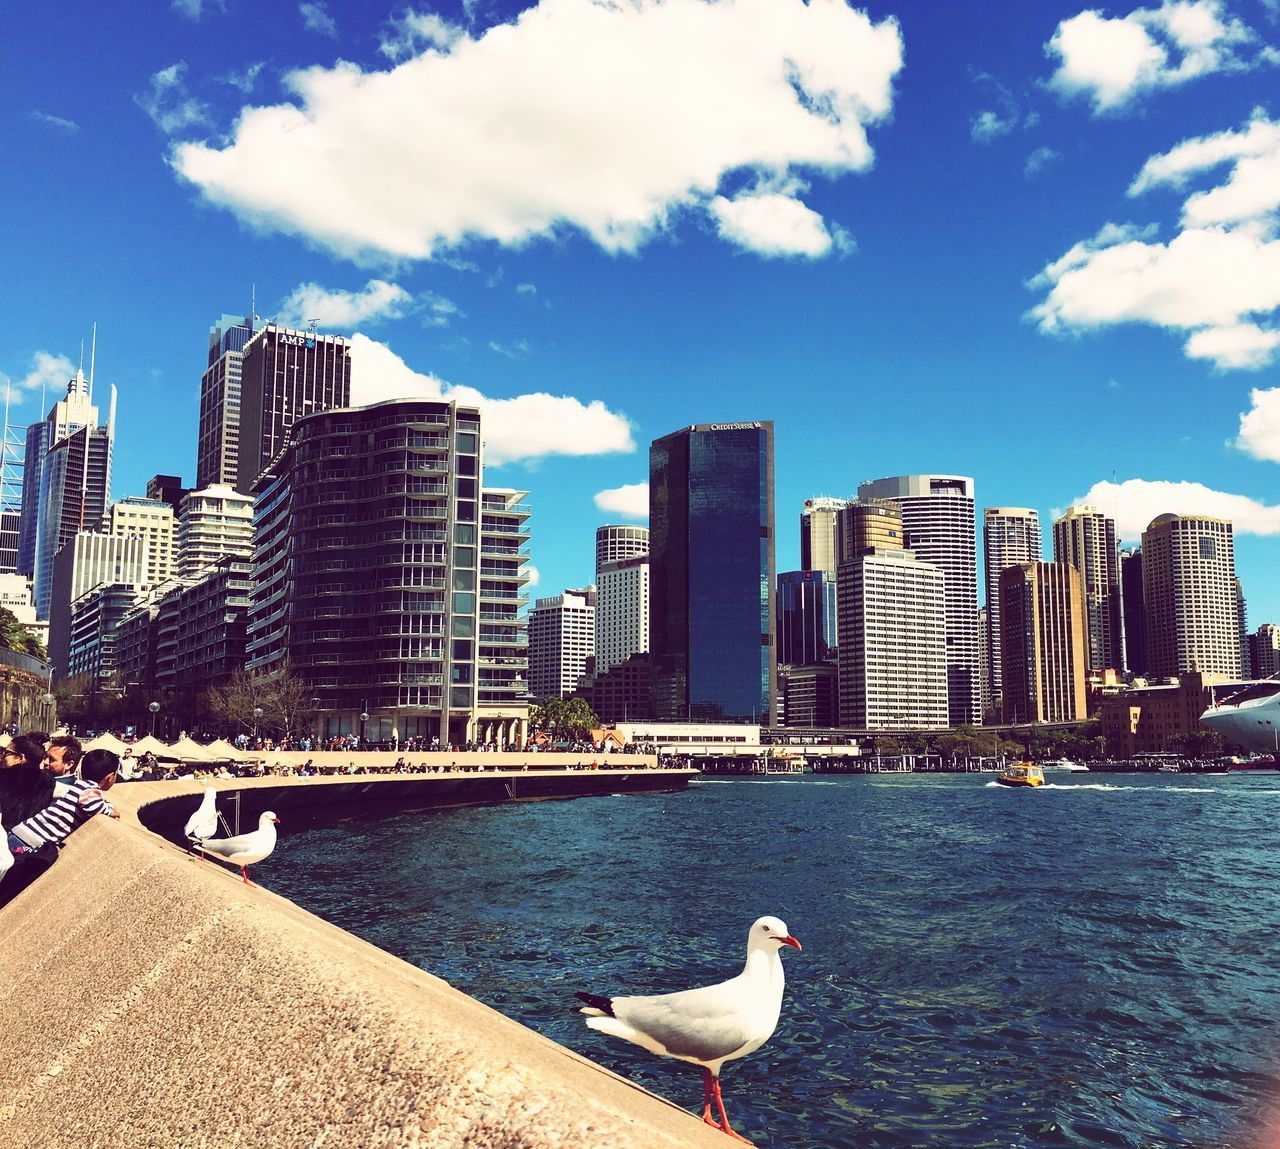 architecture, skyscraper, building exterior, built structure, cloud - sky, sky, city, day, bird, sea, water, animal themes, outdoors, modern, seagull, urban skyline, one animal, no people, animals in the wild, cityscape, nature